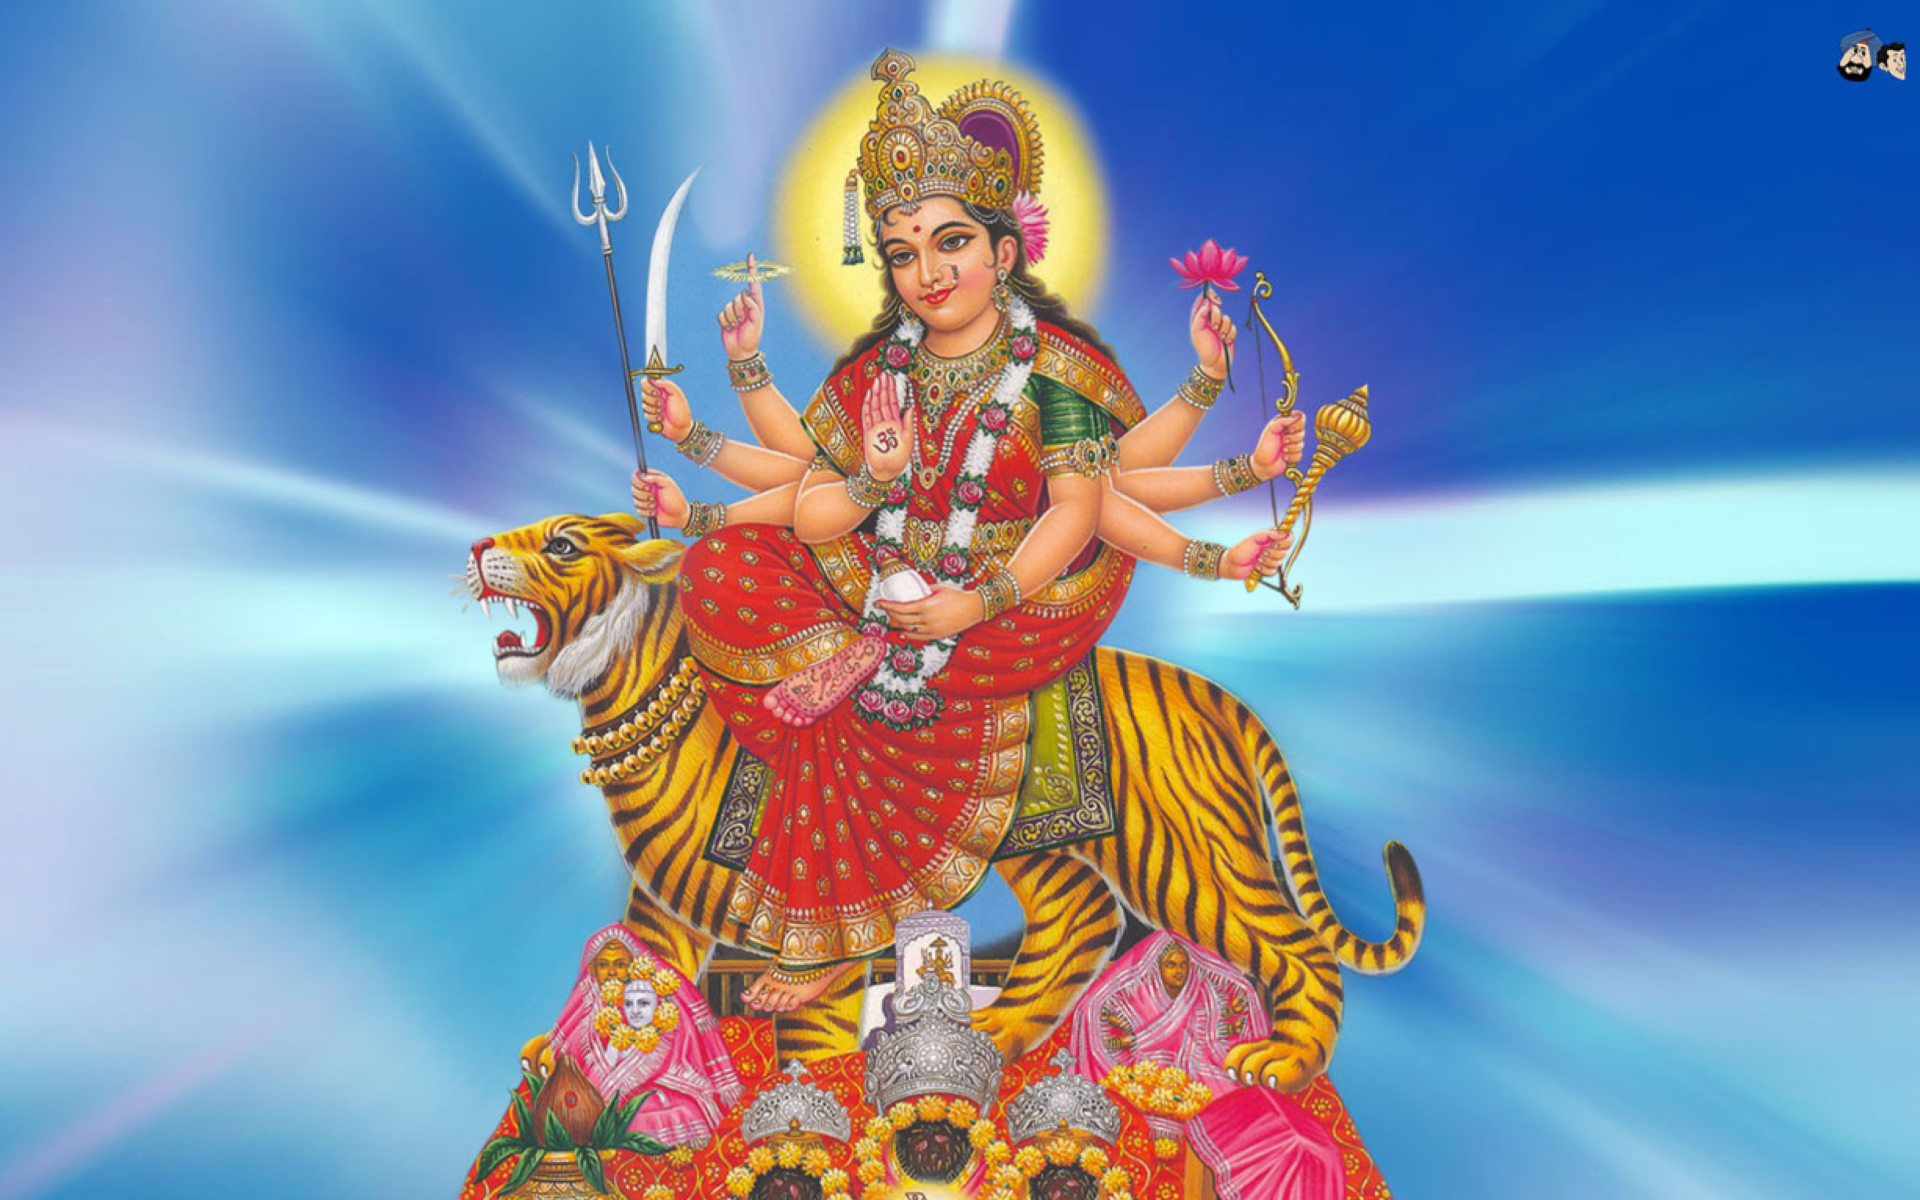 Indian Pictures of hindu gods and goddesses for mobile